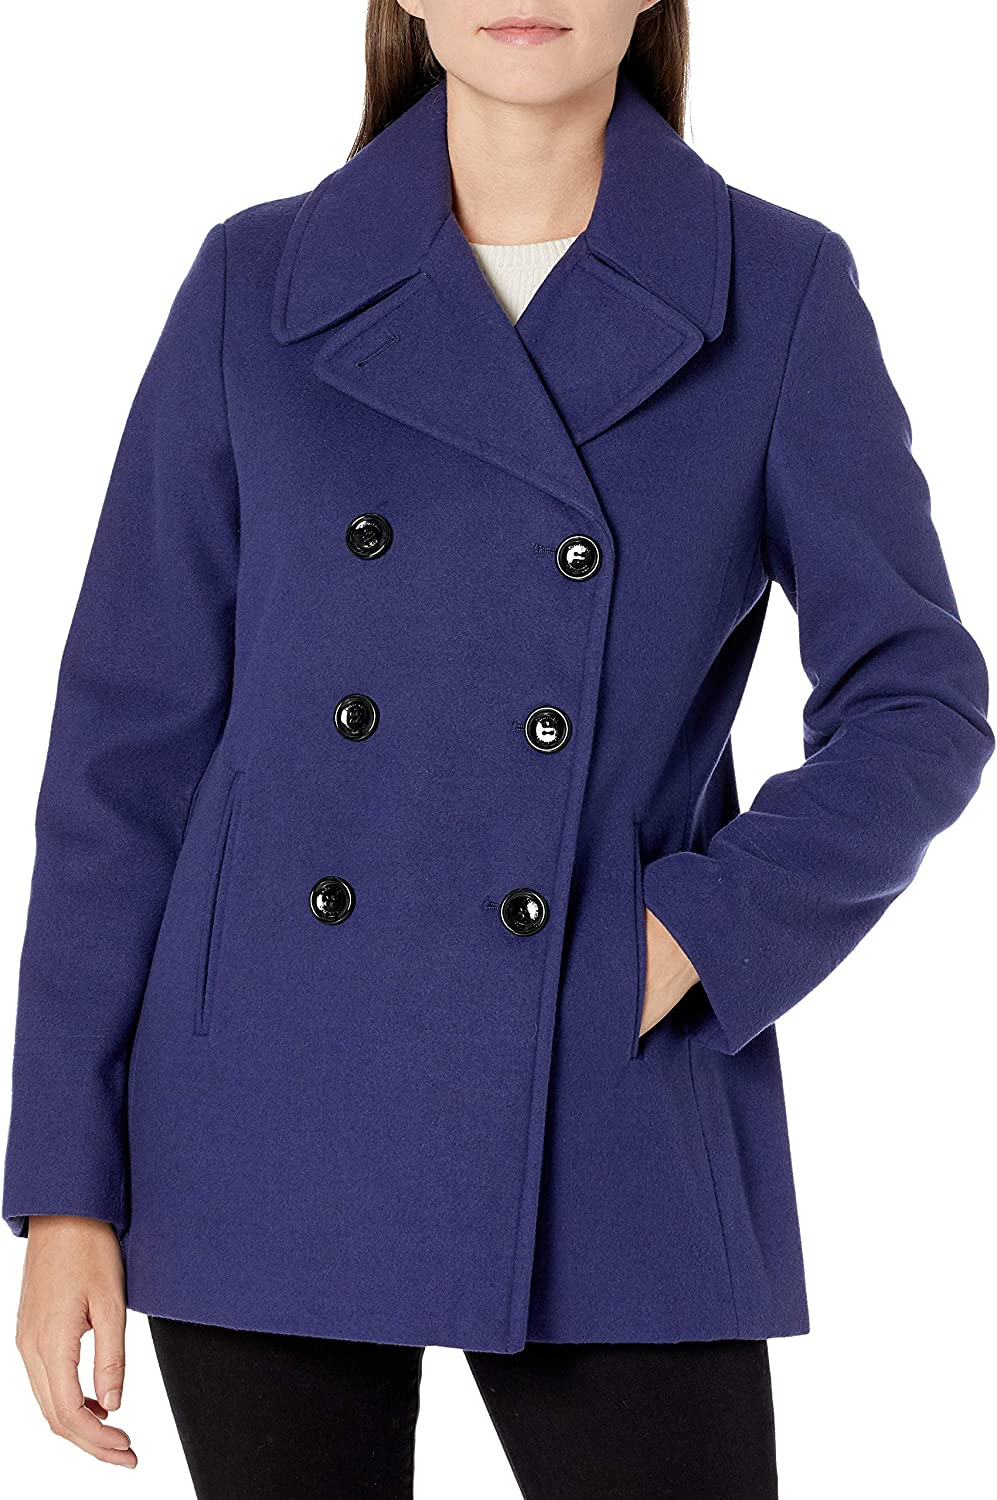 Calvin Klein Womens Double Faux Peacoat Wool Manufacturer direct delivery Lowest price challenge Breasted